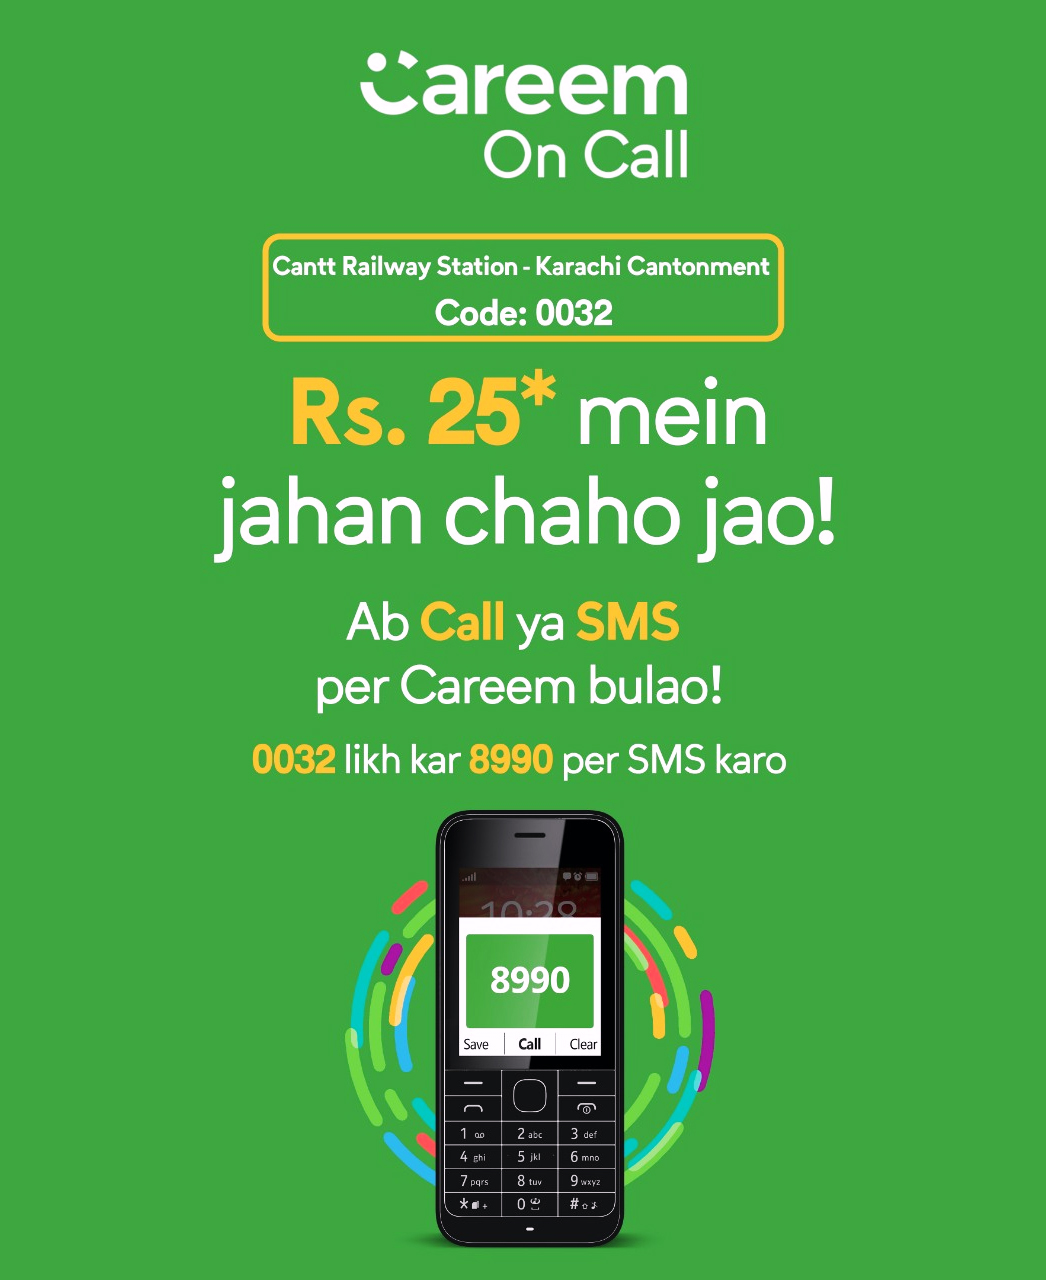 Careem on call service